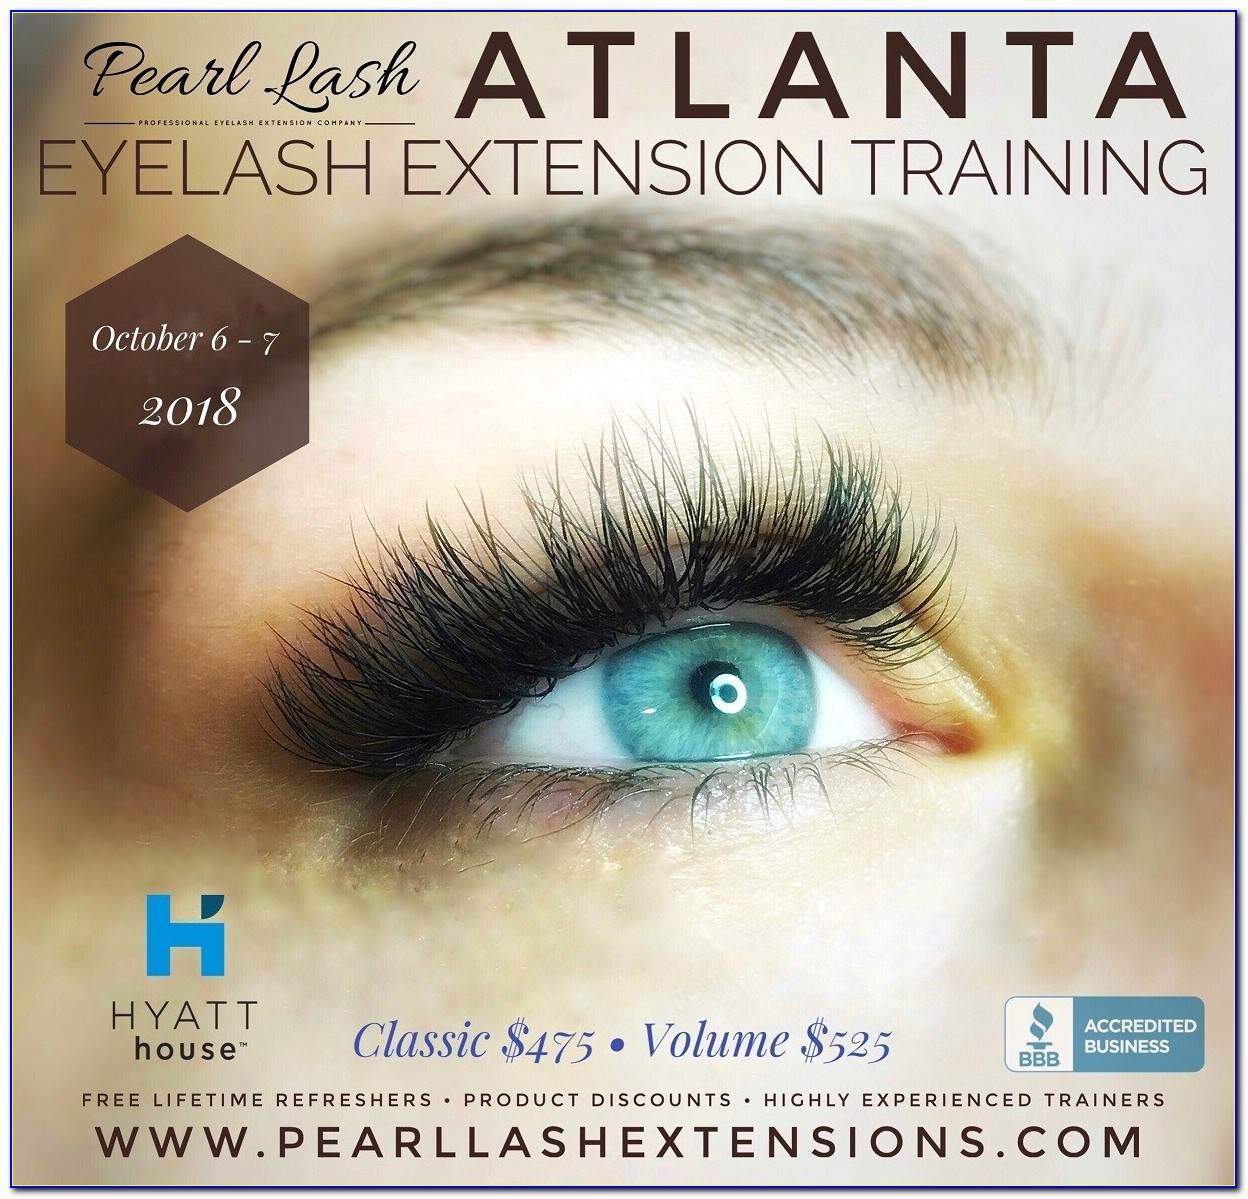 Eyelash Extension Certification Requirements Indiana